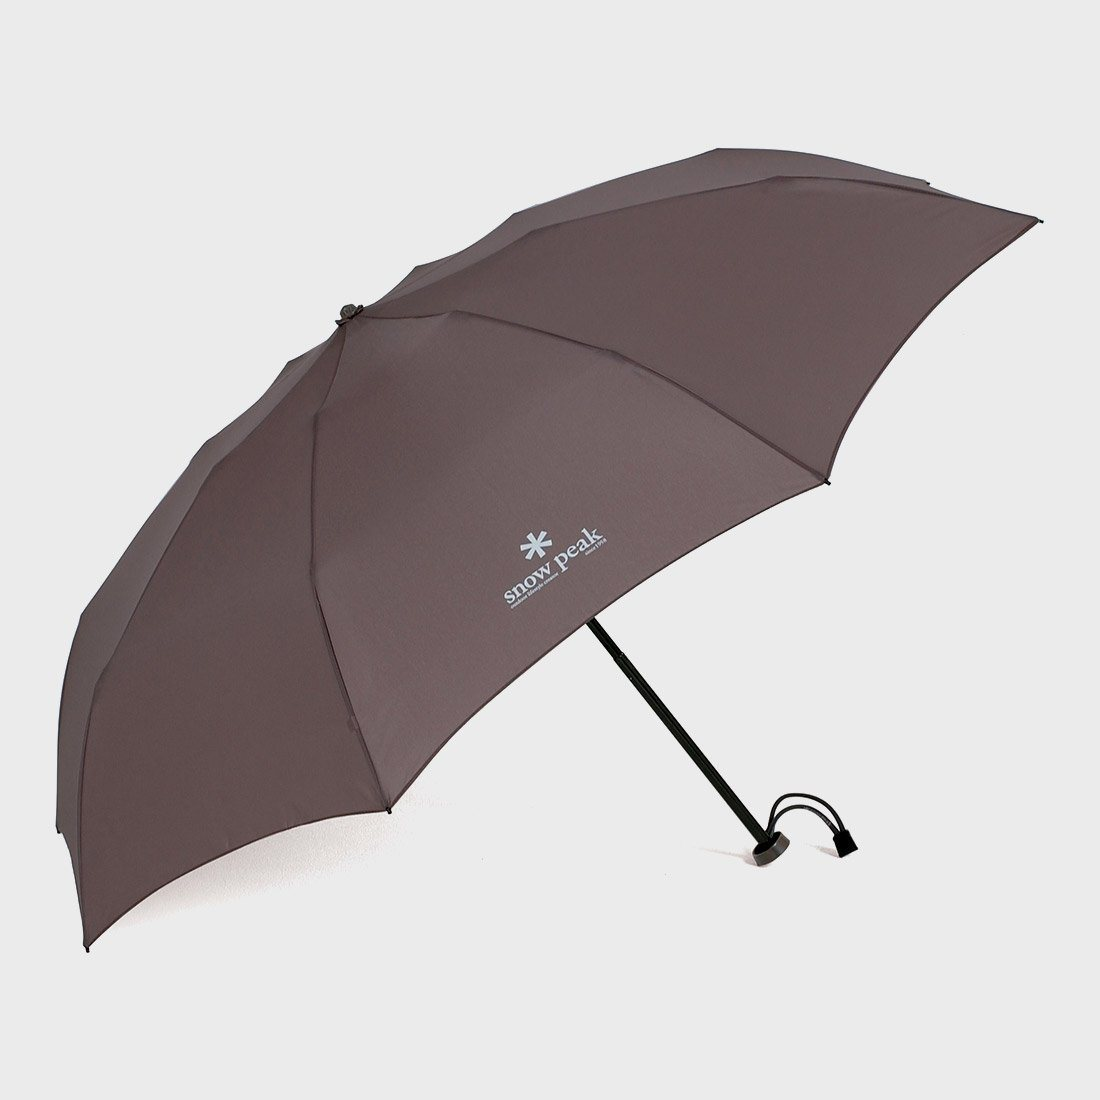 Snow Peak Ultralight Umbrella Beige